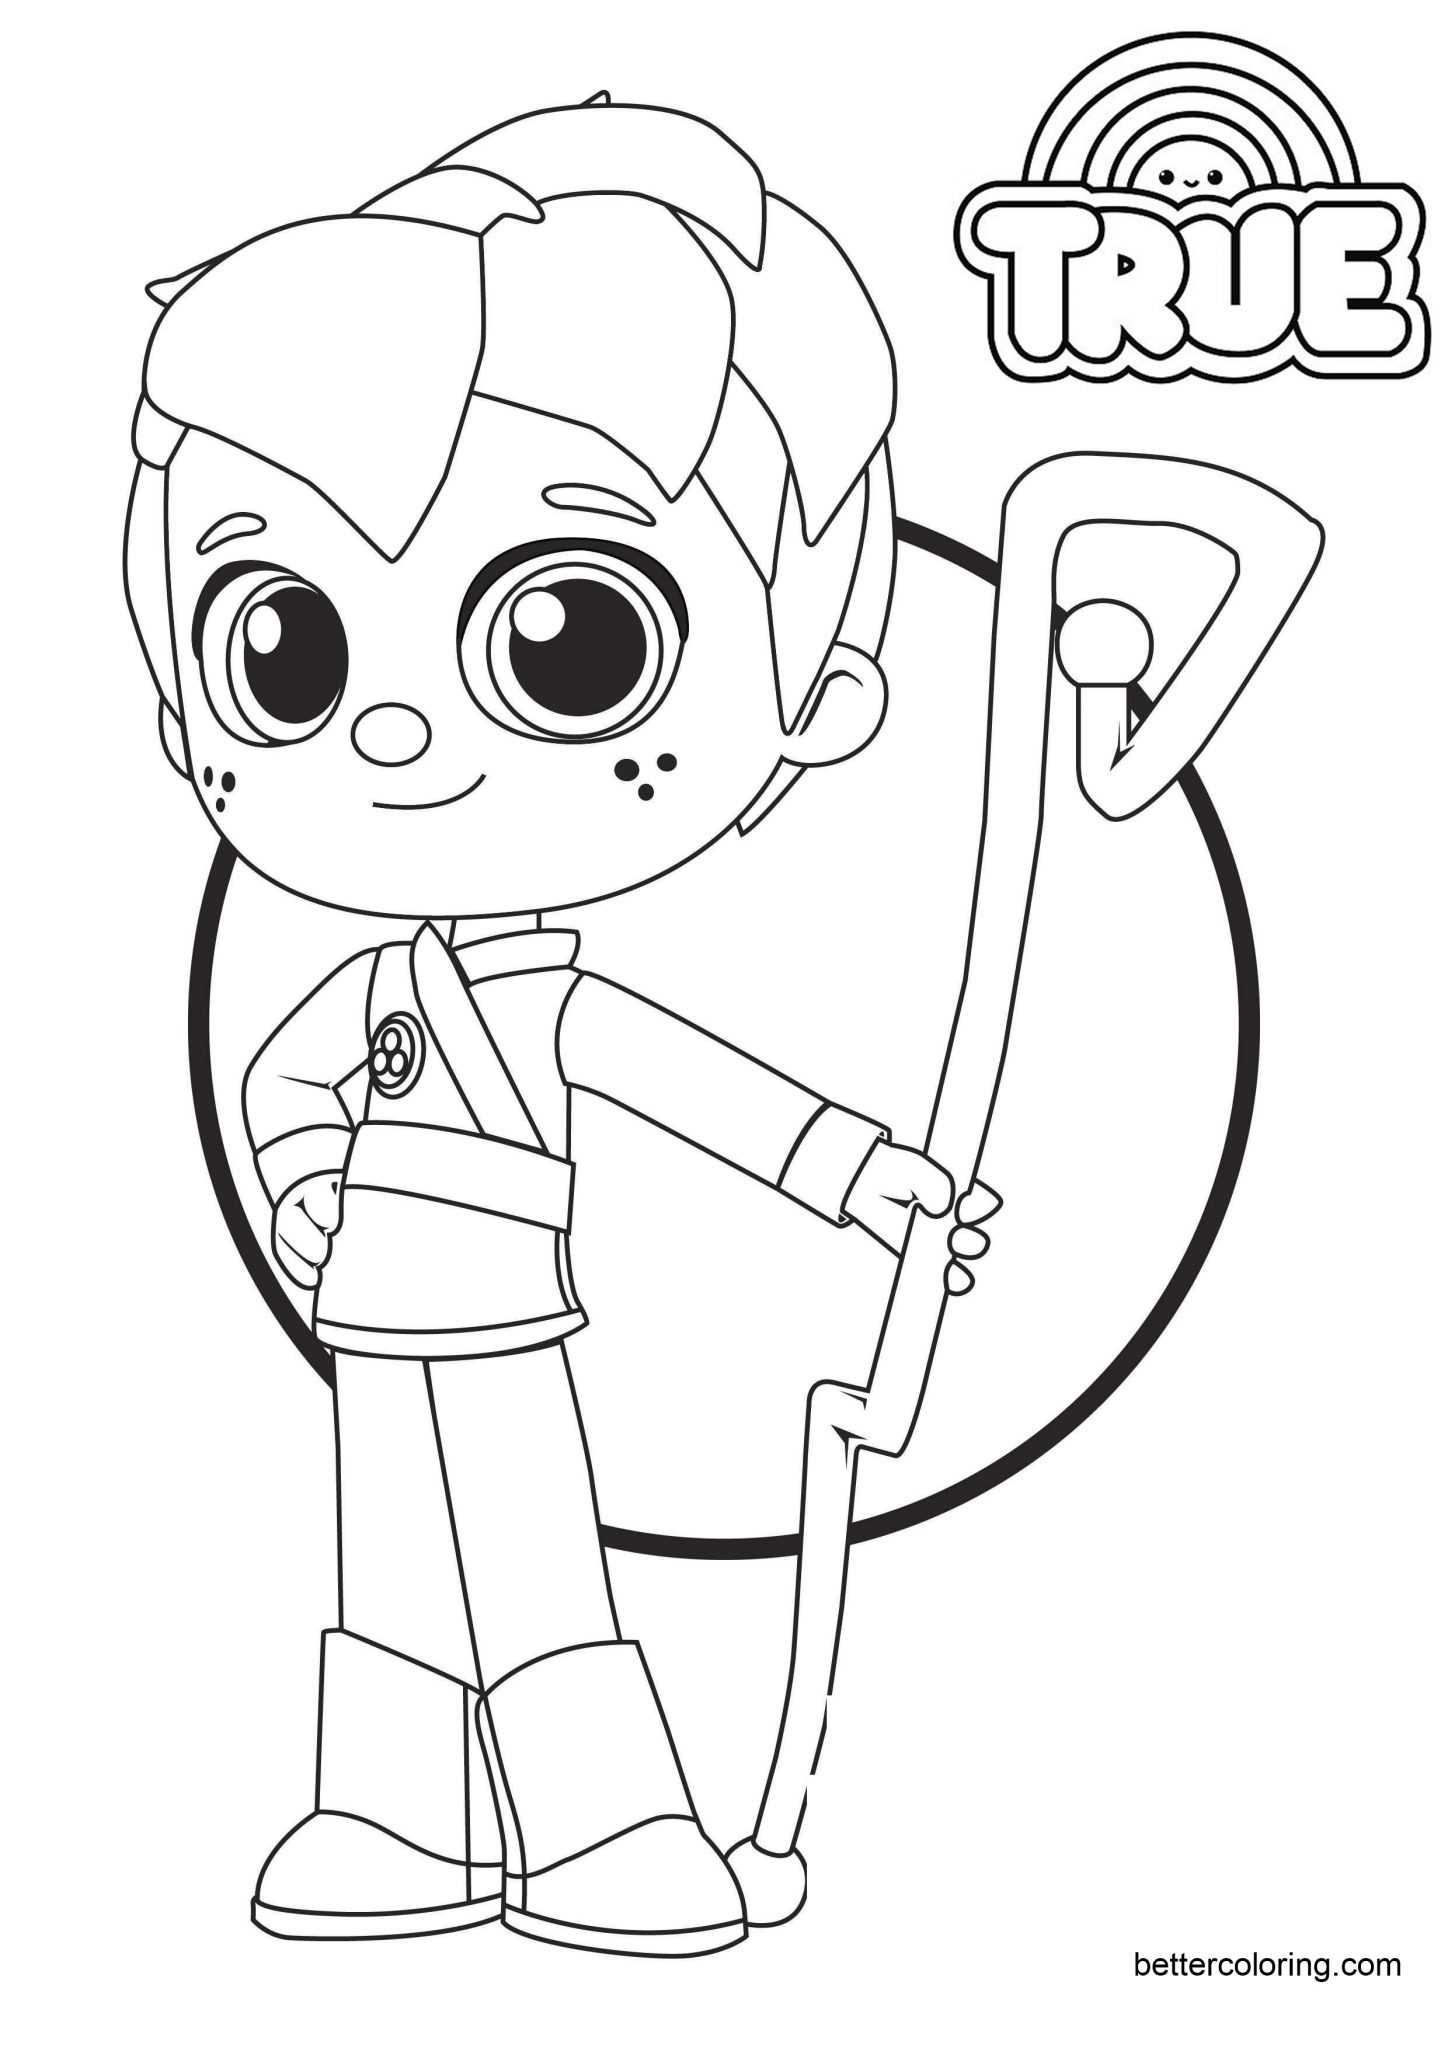 rainbow kingdom coloring pages 52 free printable true and the rainbow kingdom coloring pages coloring rainbow kingdom